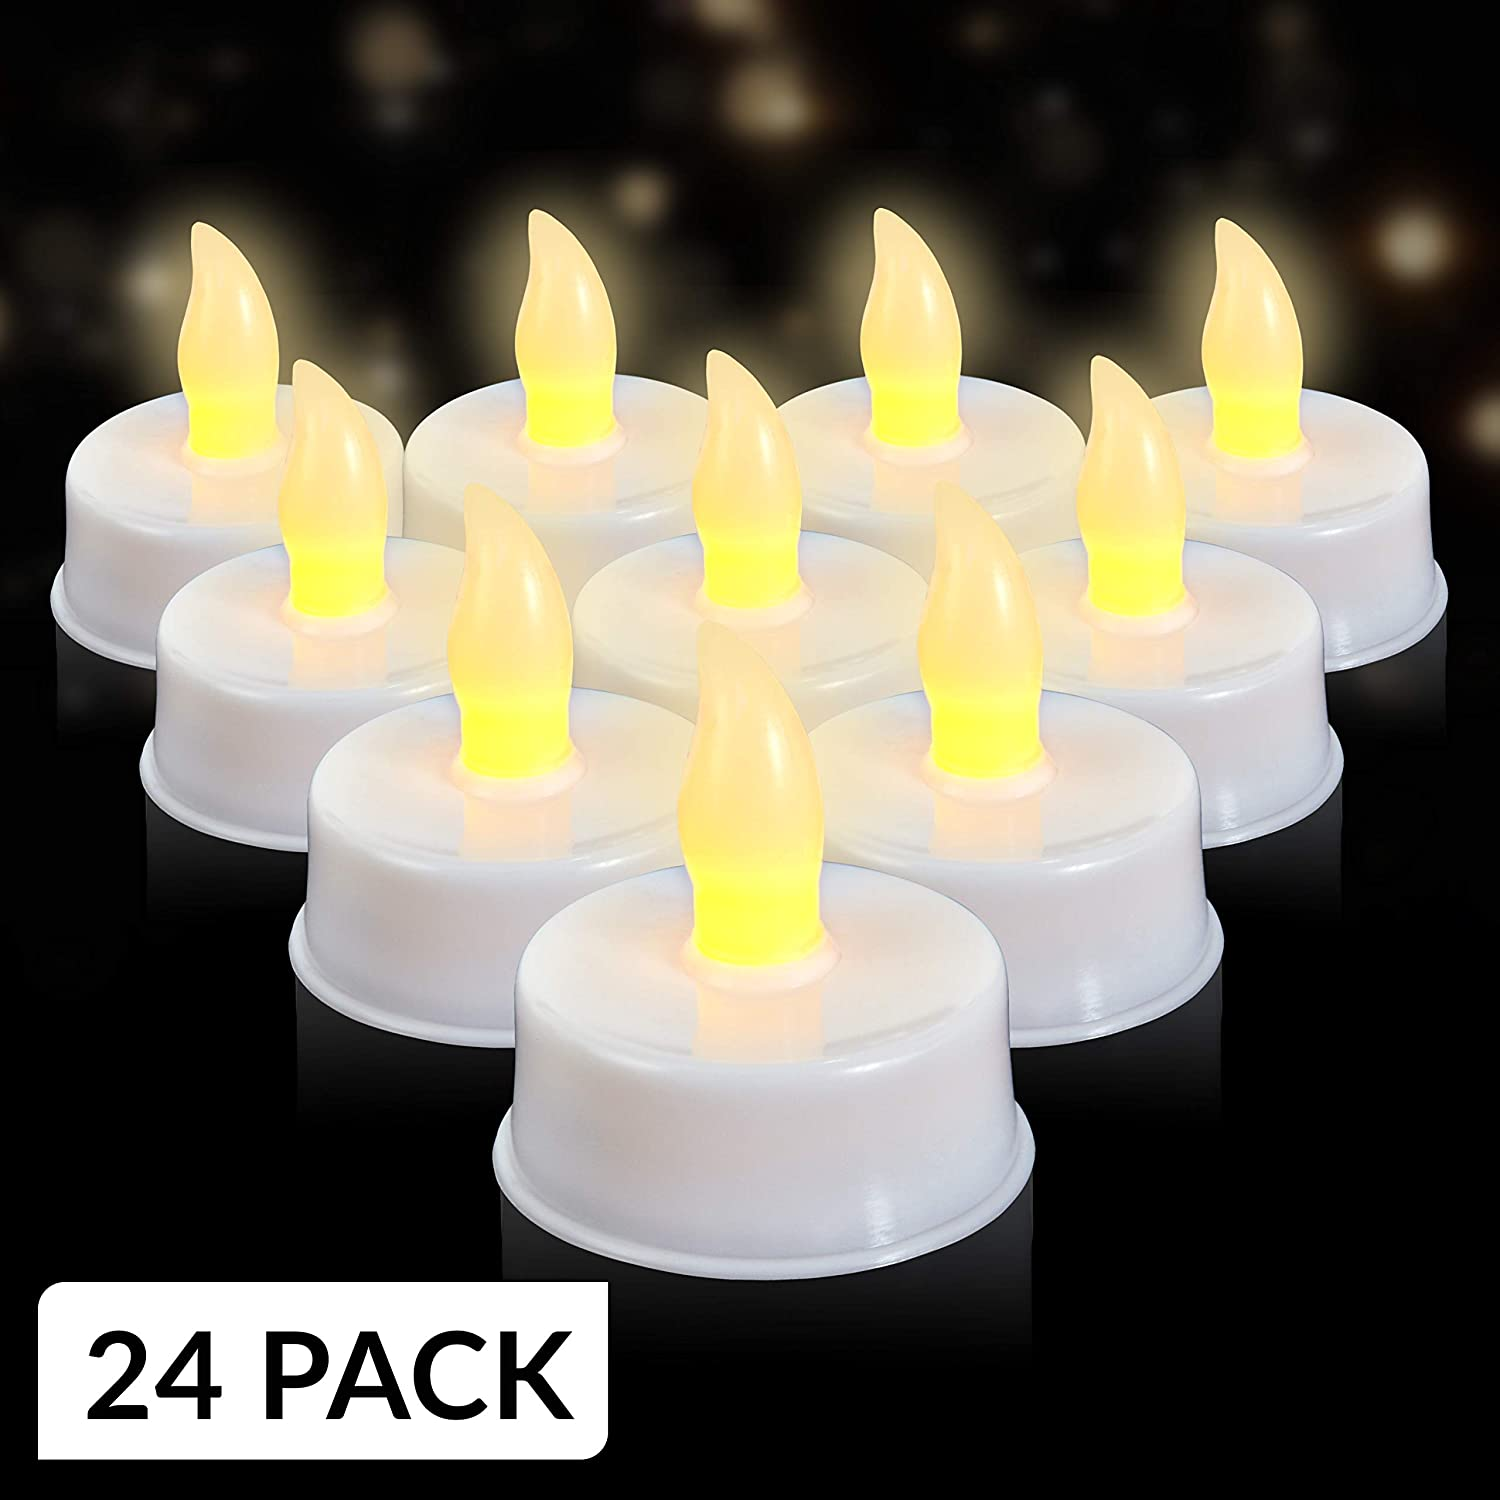 24 Pack Realistic 70Hr Battery Included Unscented Flameless LED Tea Light Candle